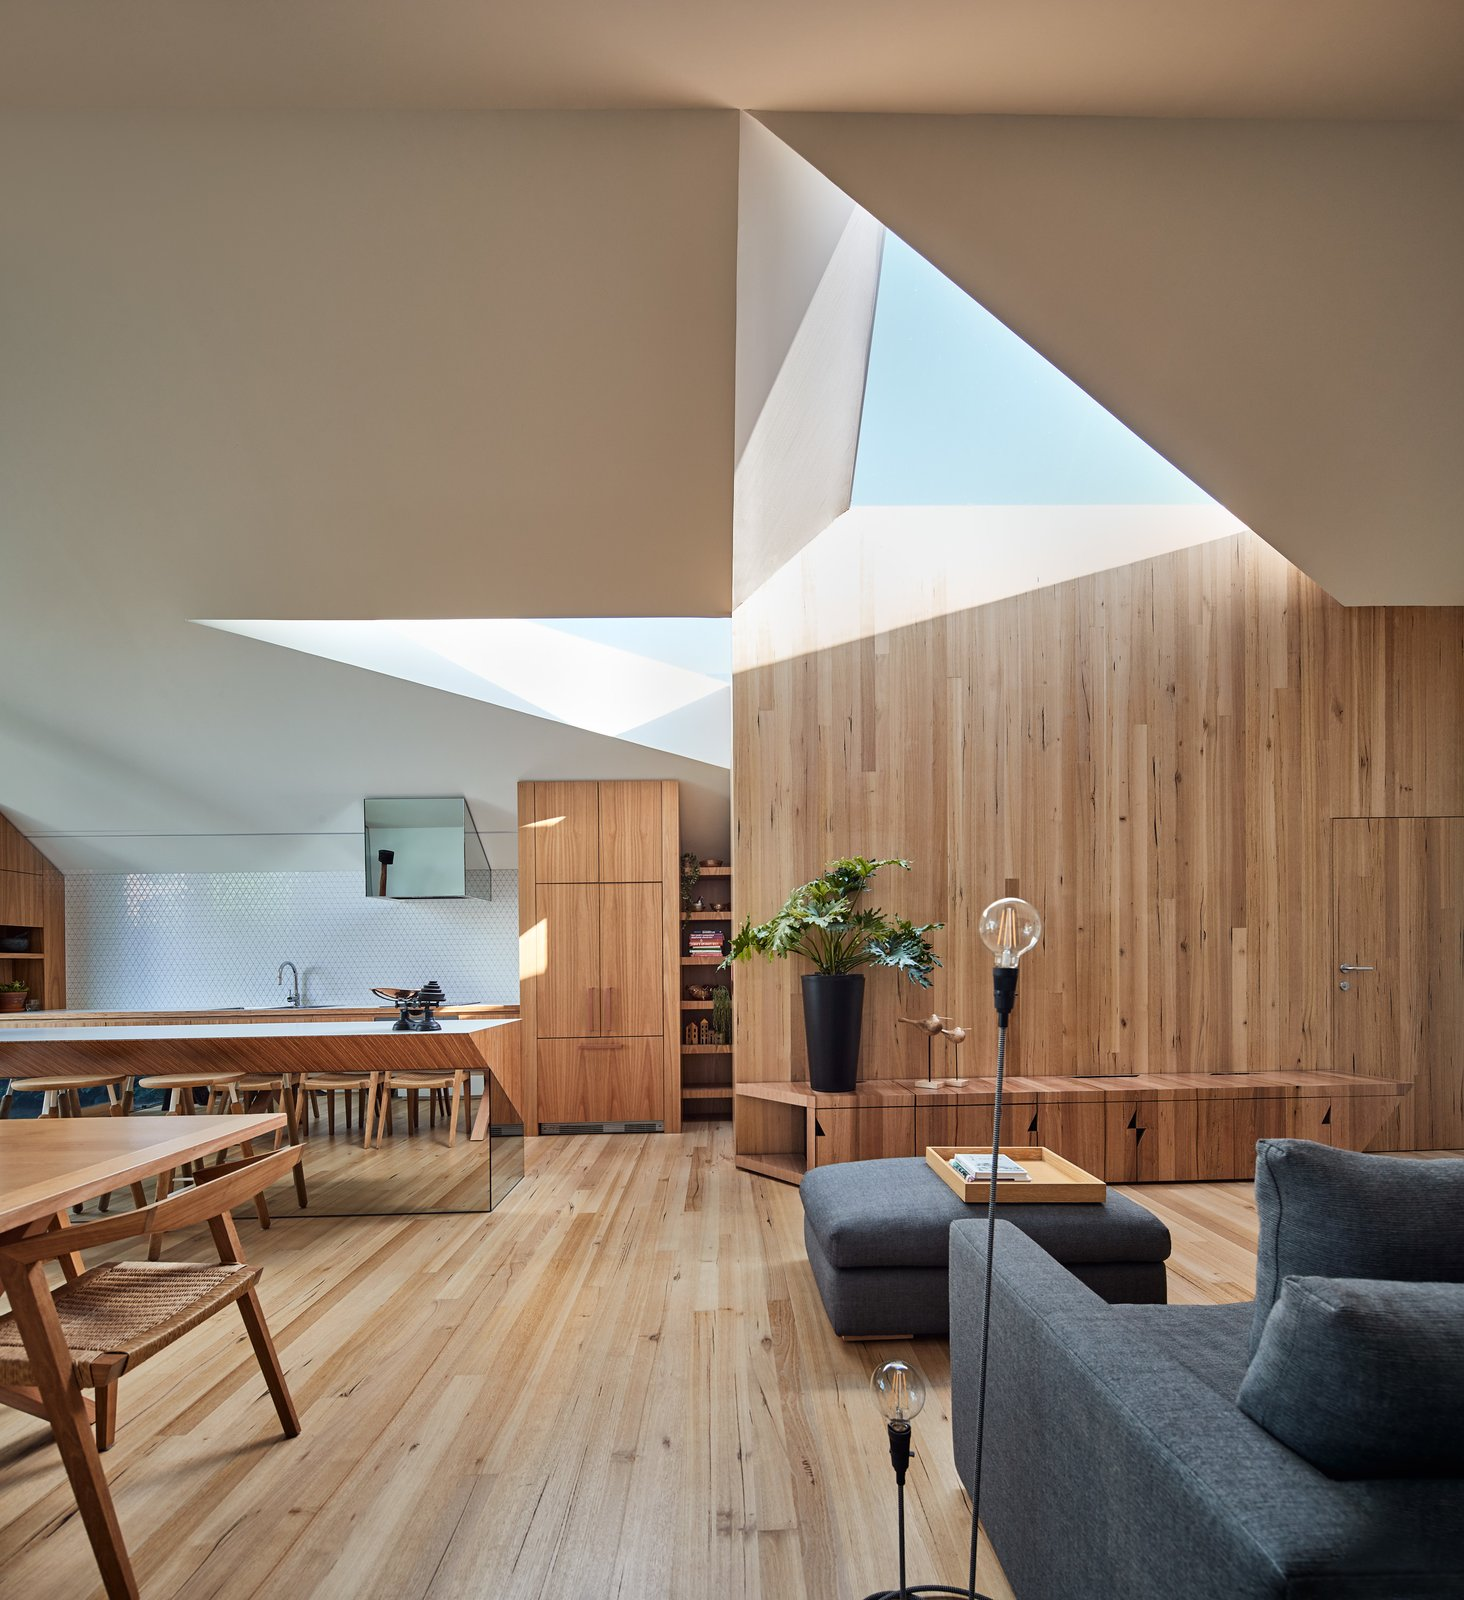 His and Hers House by FMD Architects living room with triangular skylights